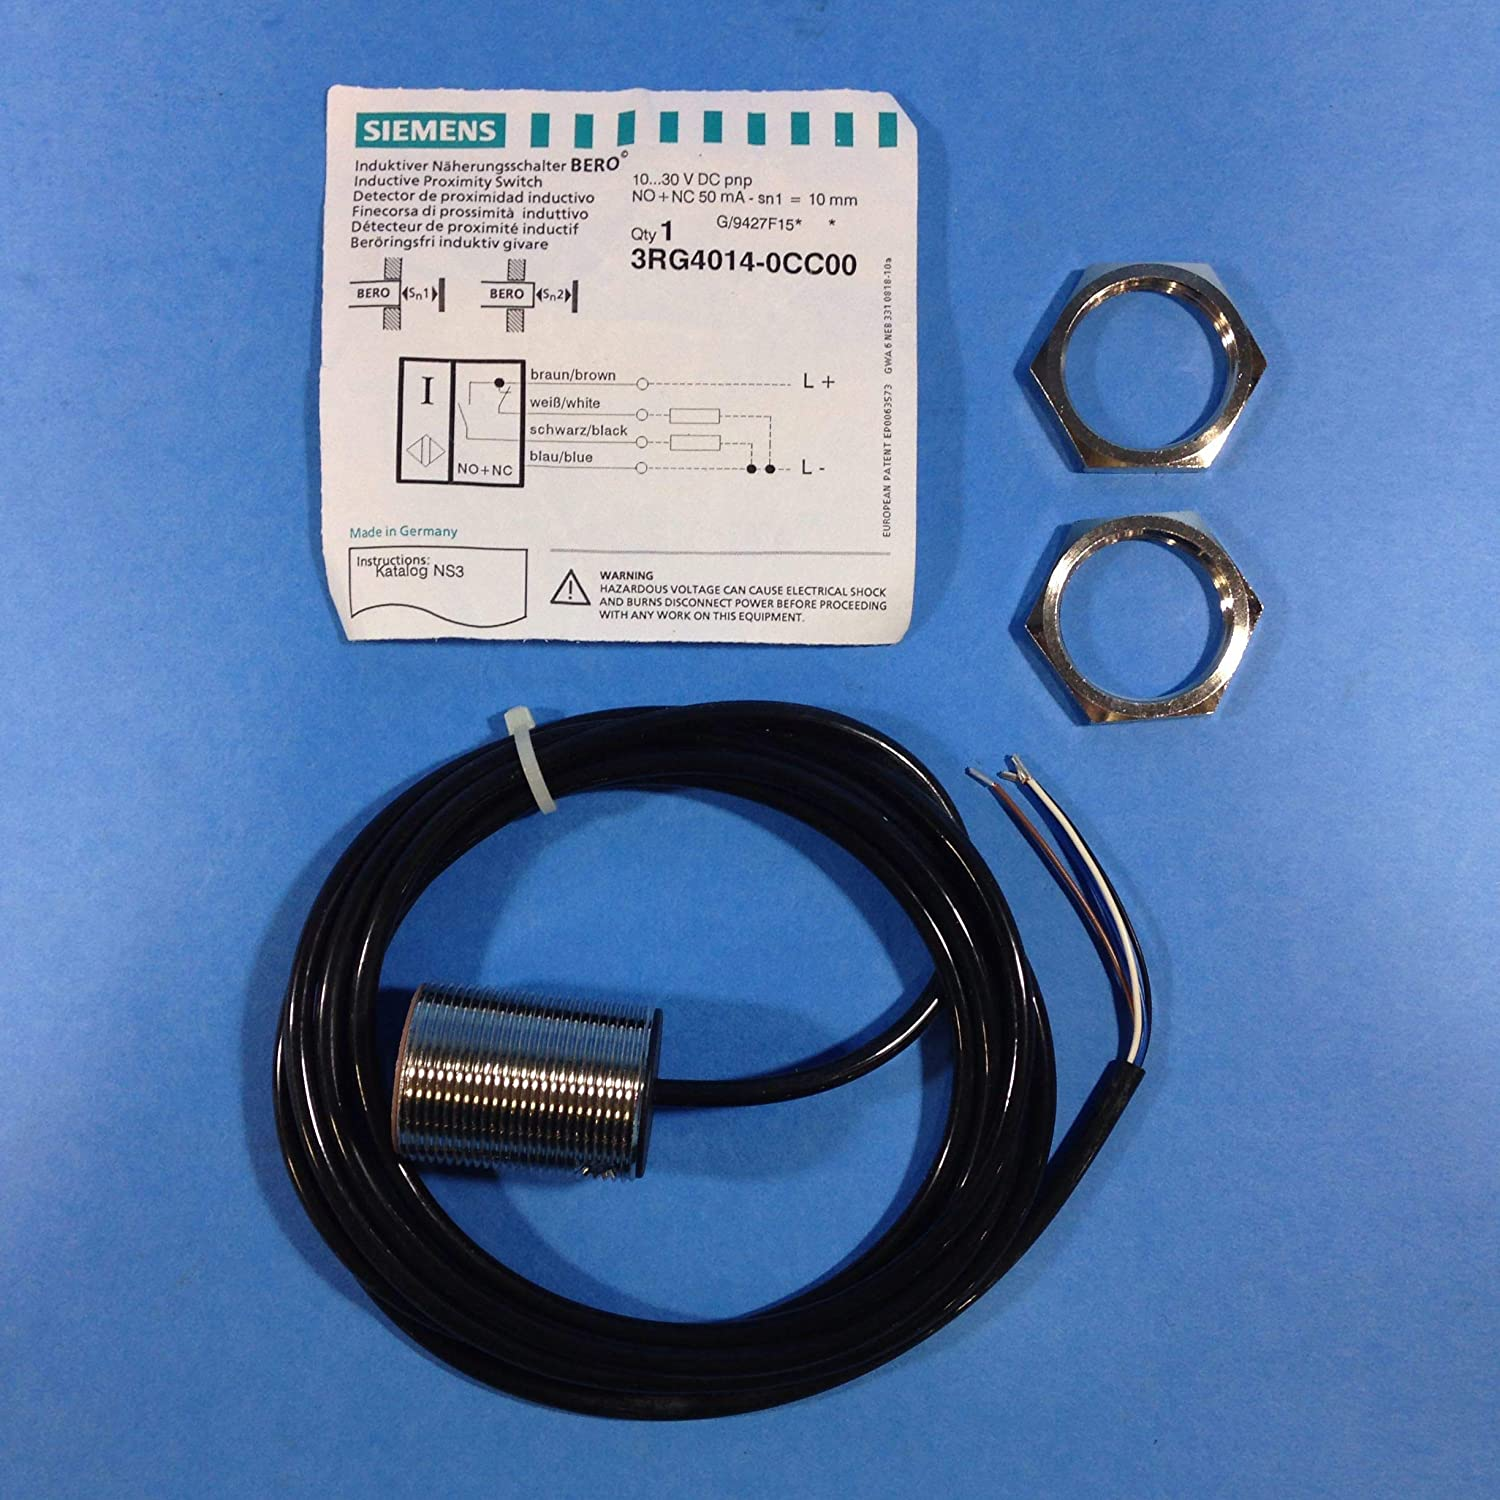 Siemens 3RG4014-0CC00 Inductive Proximity Switch: Amazon.com: Industrial & Scientific